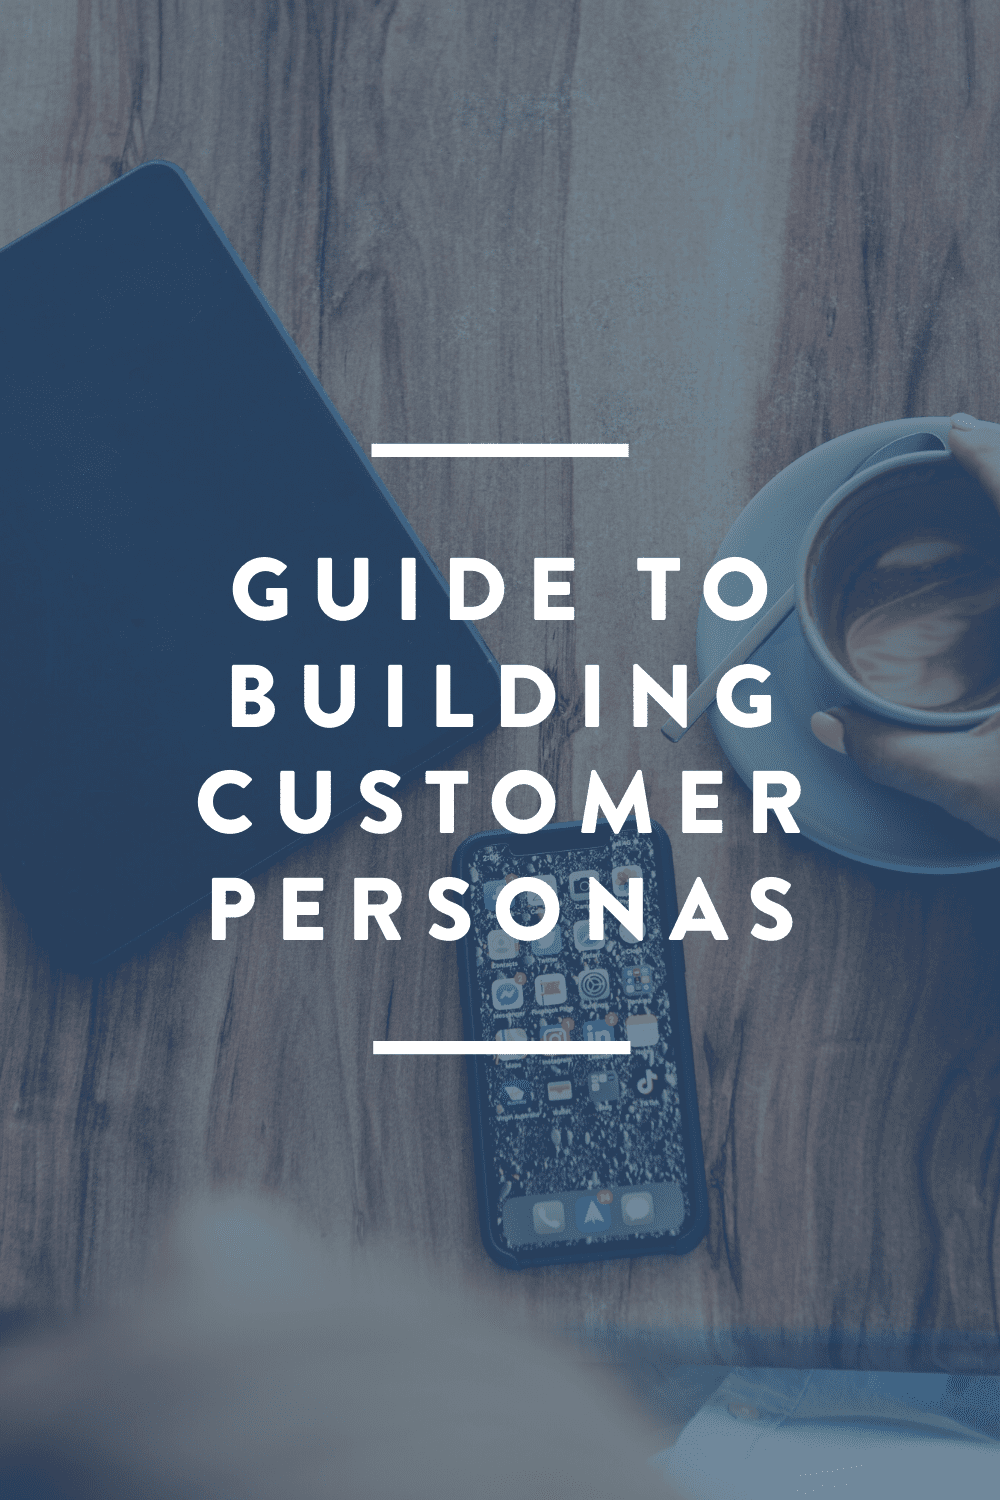 Guide to Building Customer Personas // DOWNLOAD